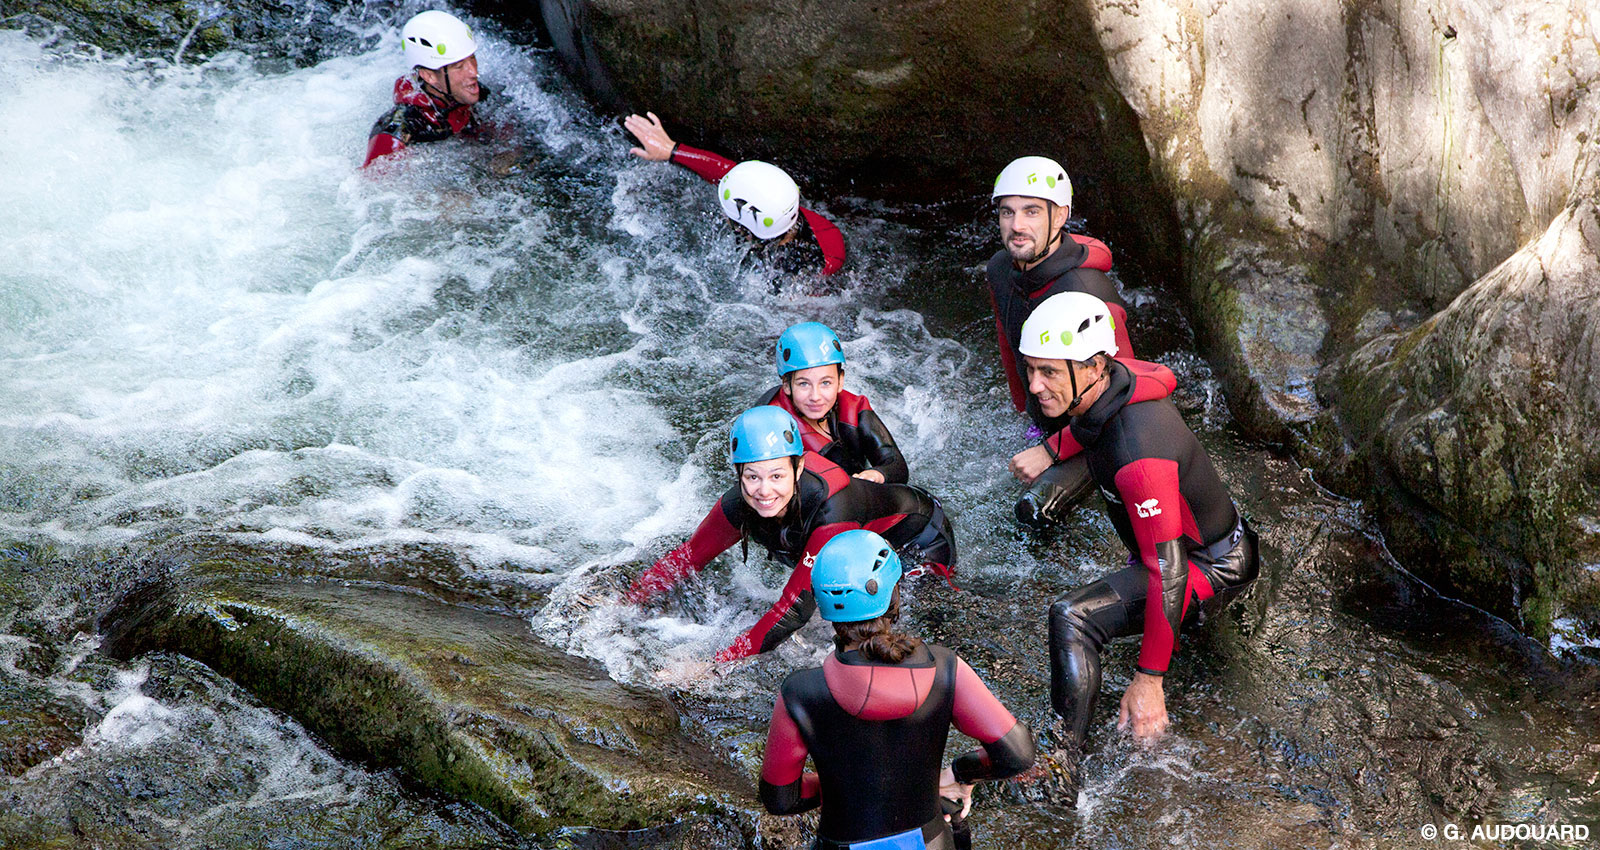 Canyoning In The Ardeche Region With Pgl